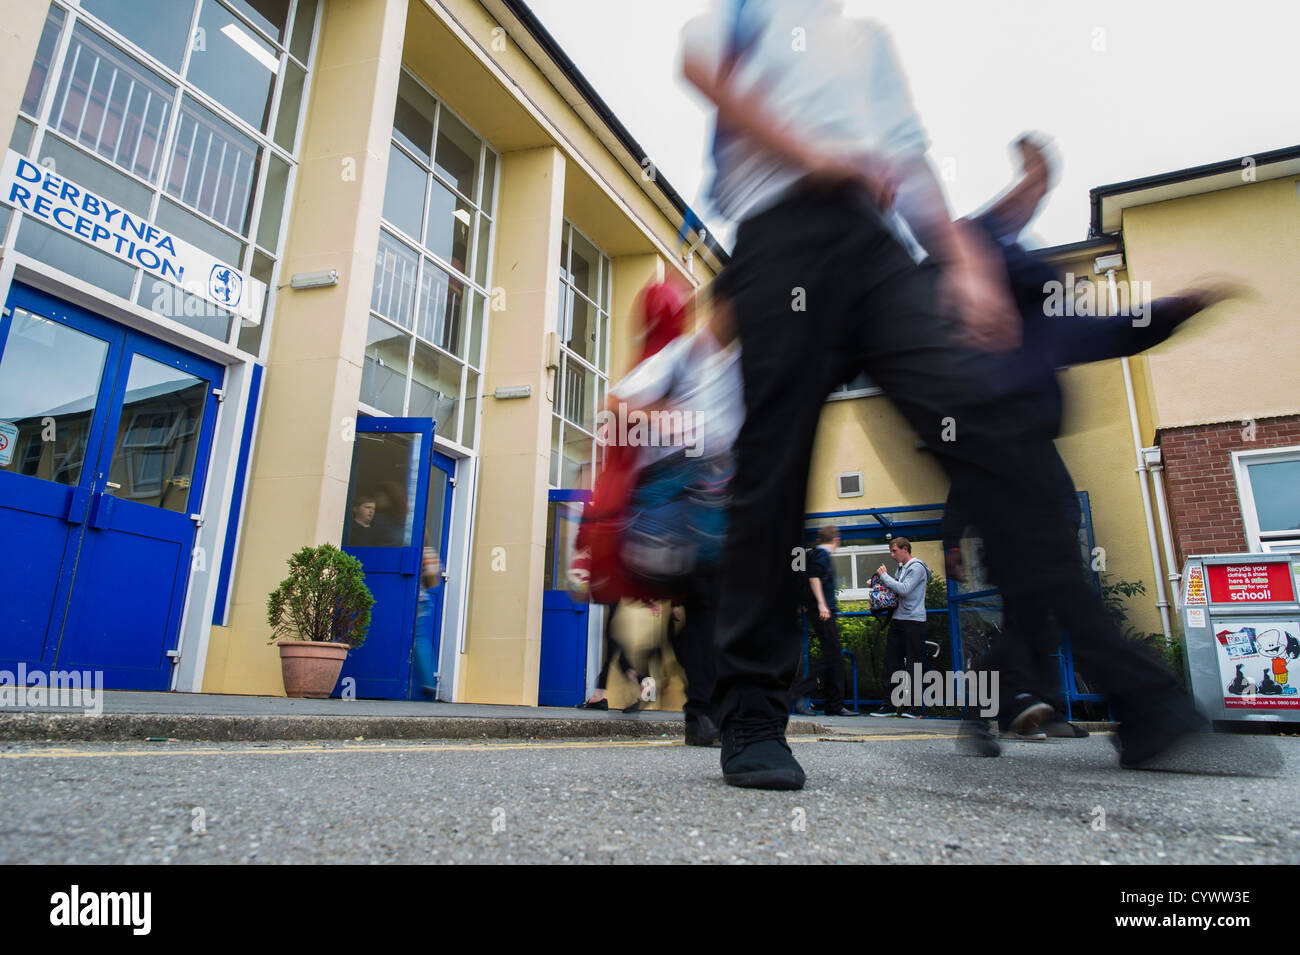 At the end of the day pupils leaving a secondary school, Wales UK - Stock Image